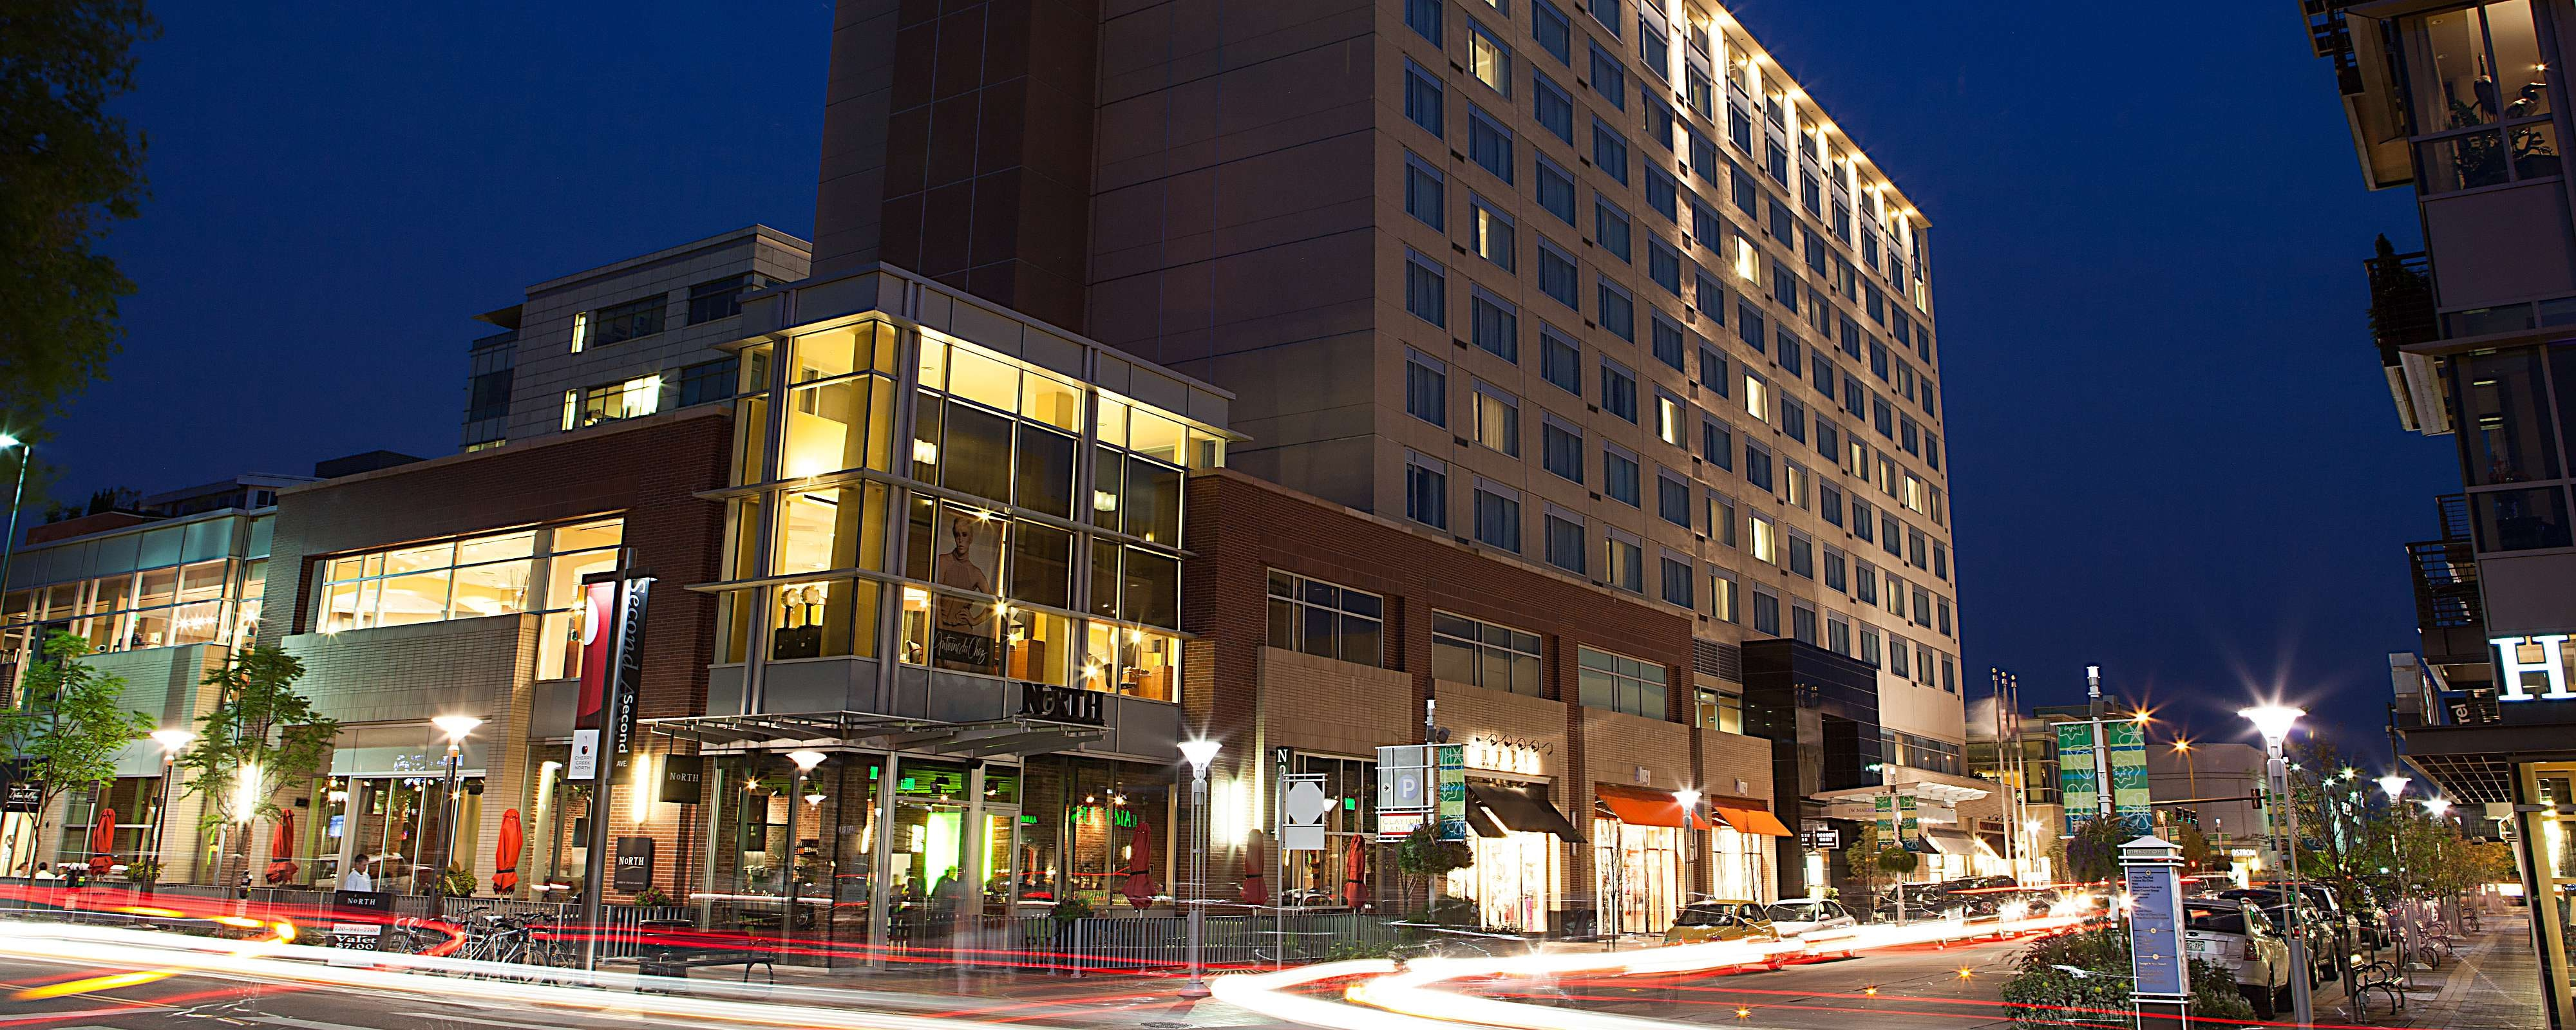 Denver Luxury Hotels